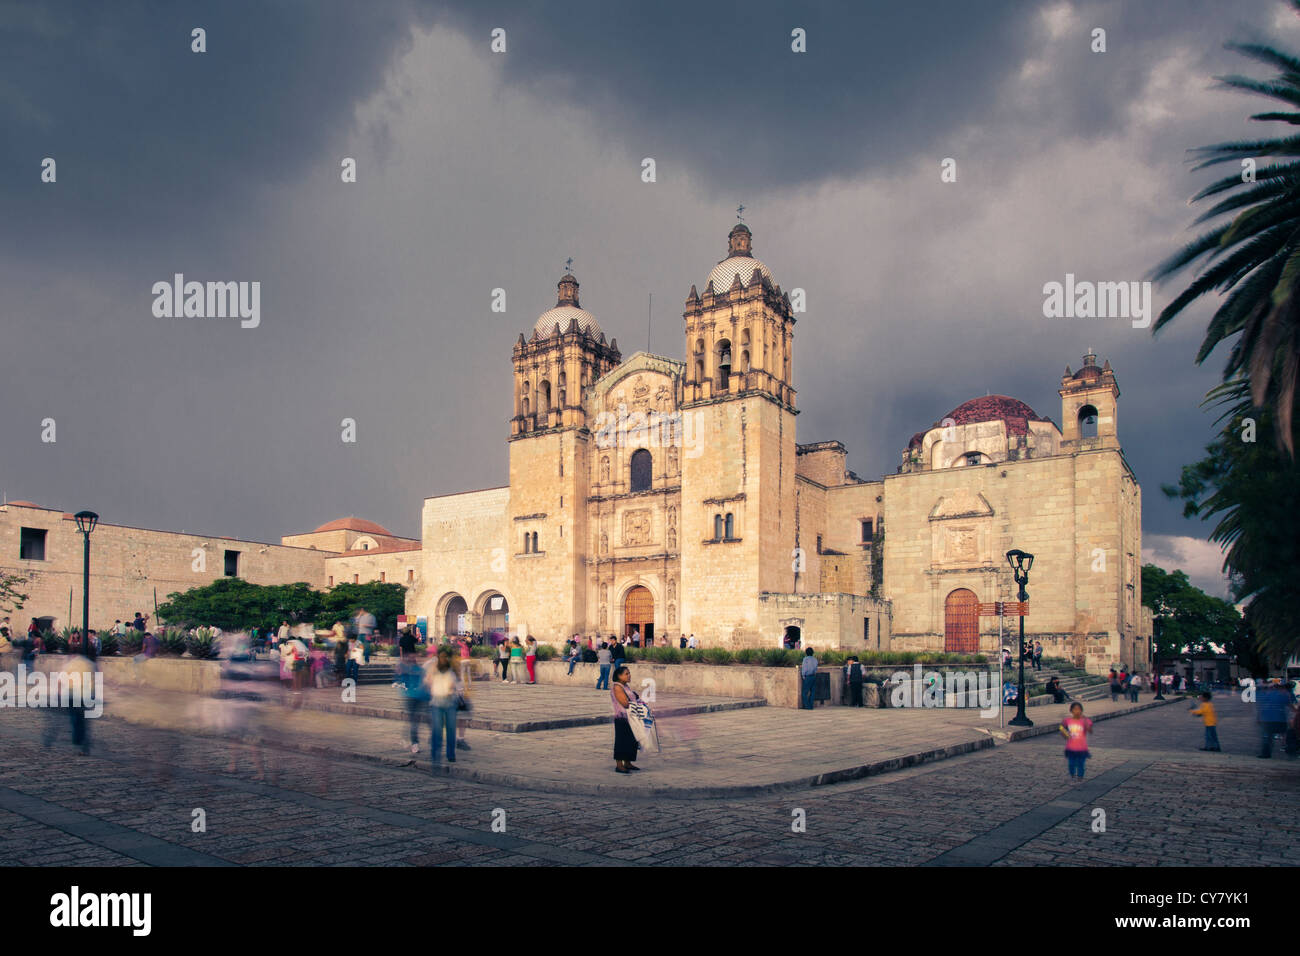 People mull around the Santo Domingo church as a thunderstorm approaches in Oaxaca, Mexico. - Stock Image